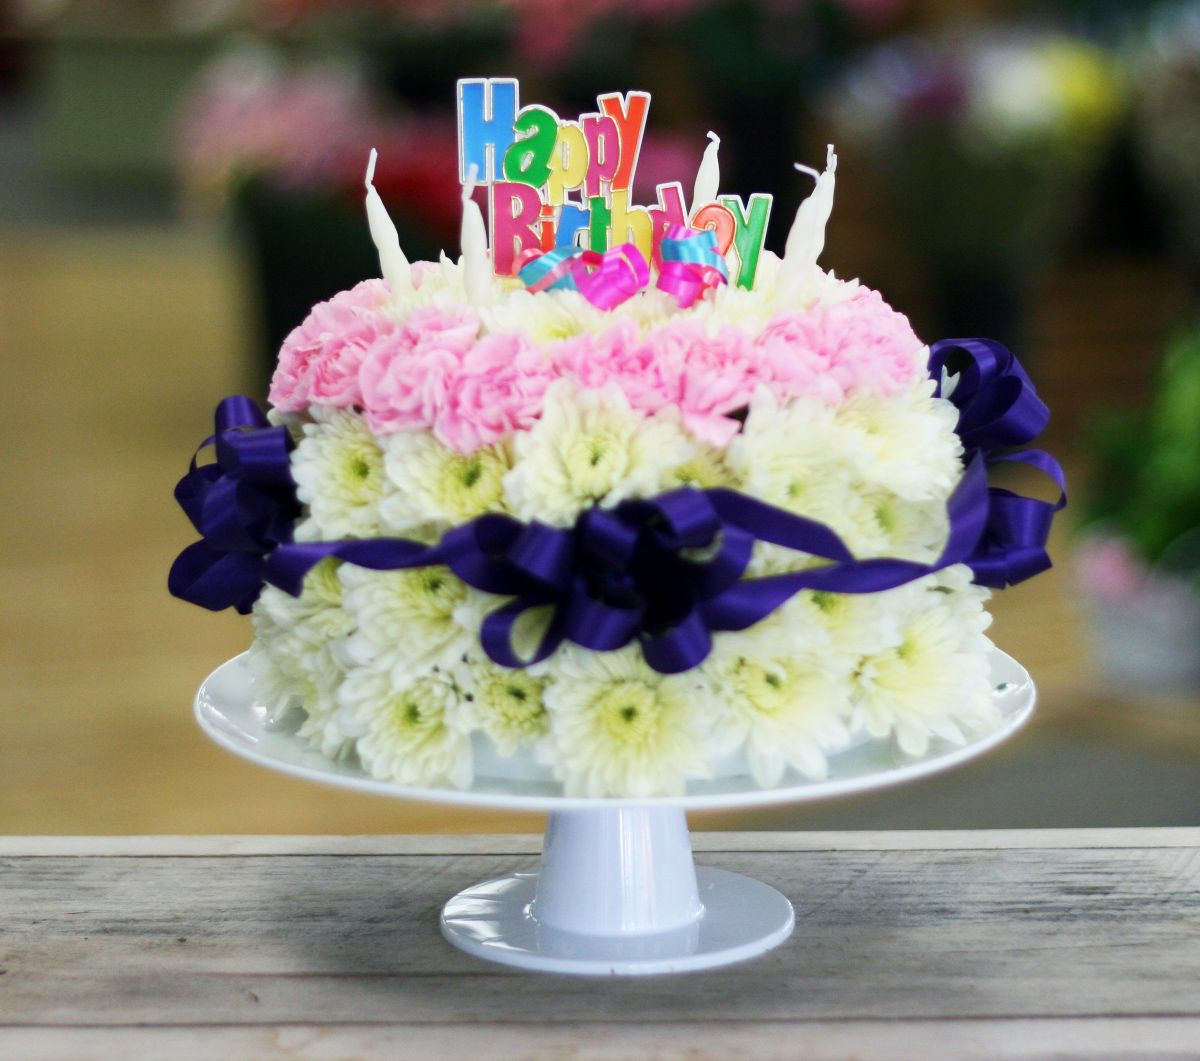 Best ideas about Birthday Cake Flowers . Save or Pin 35 Awesome birthday flowers and cake images Now.